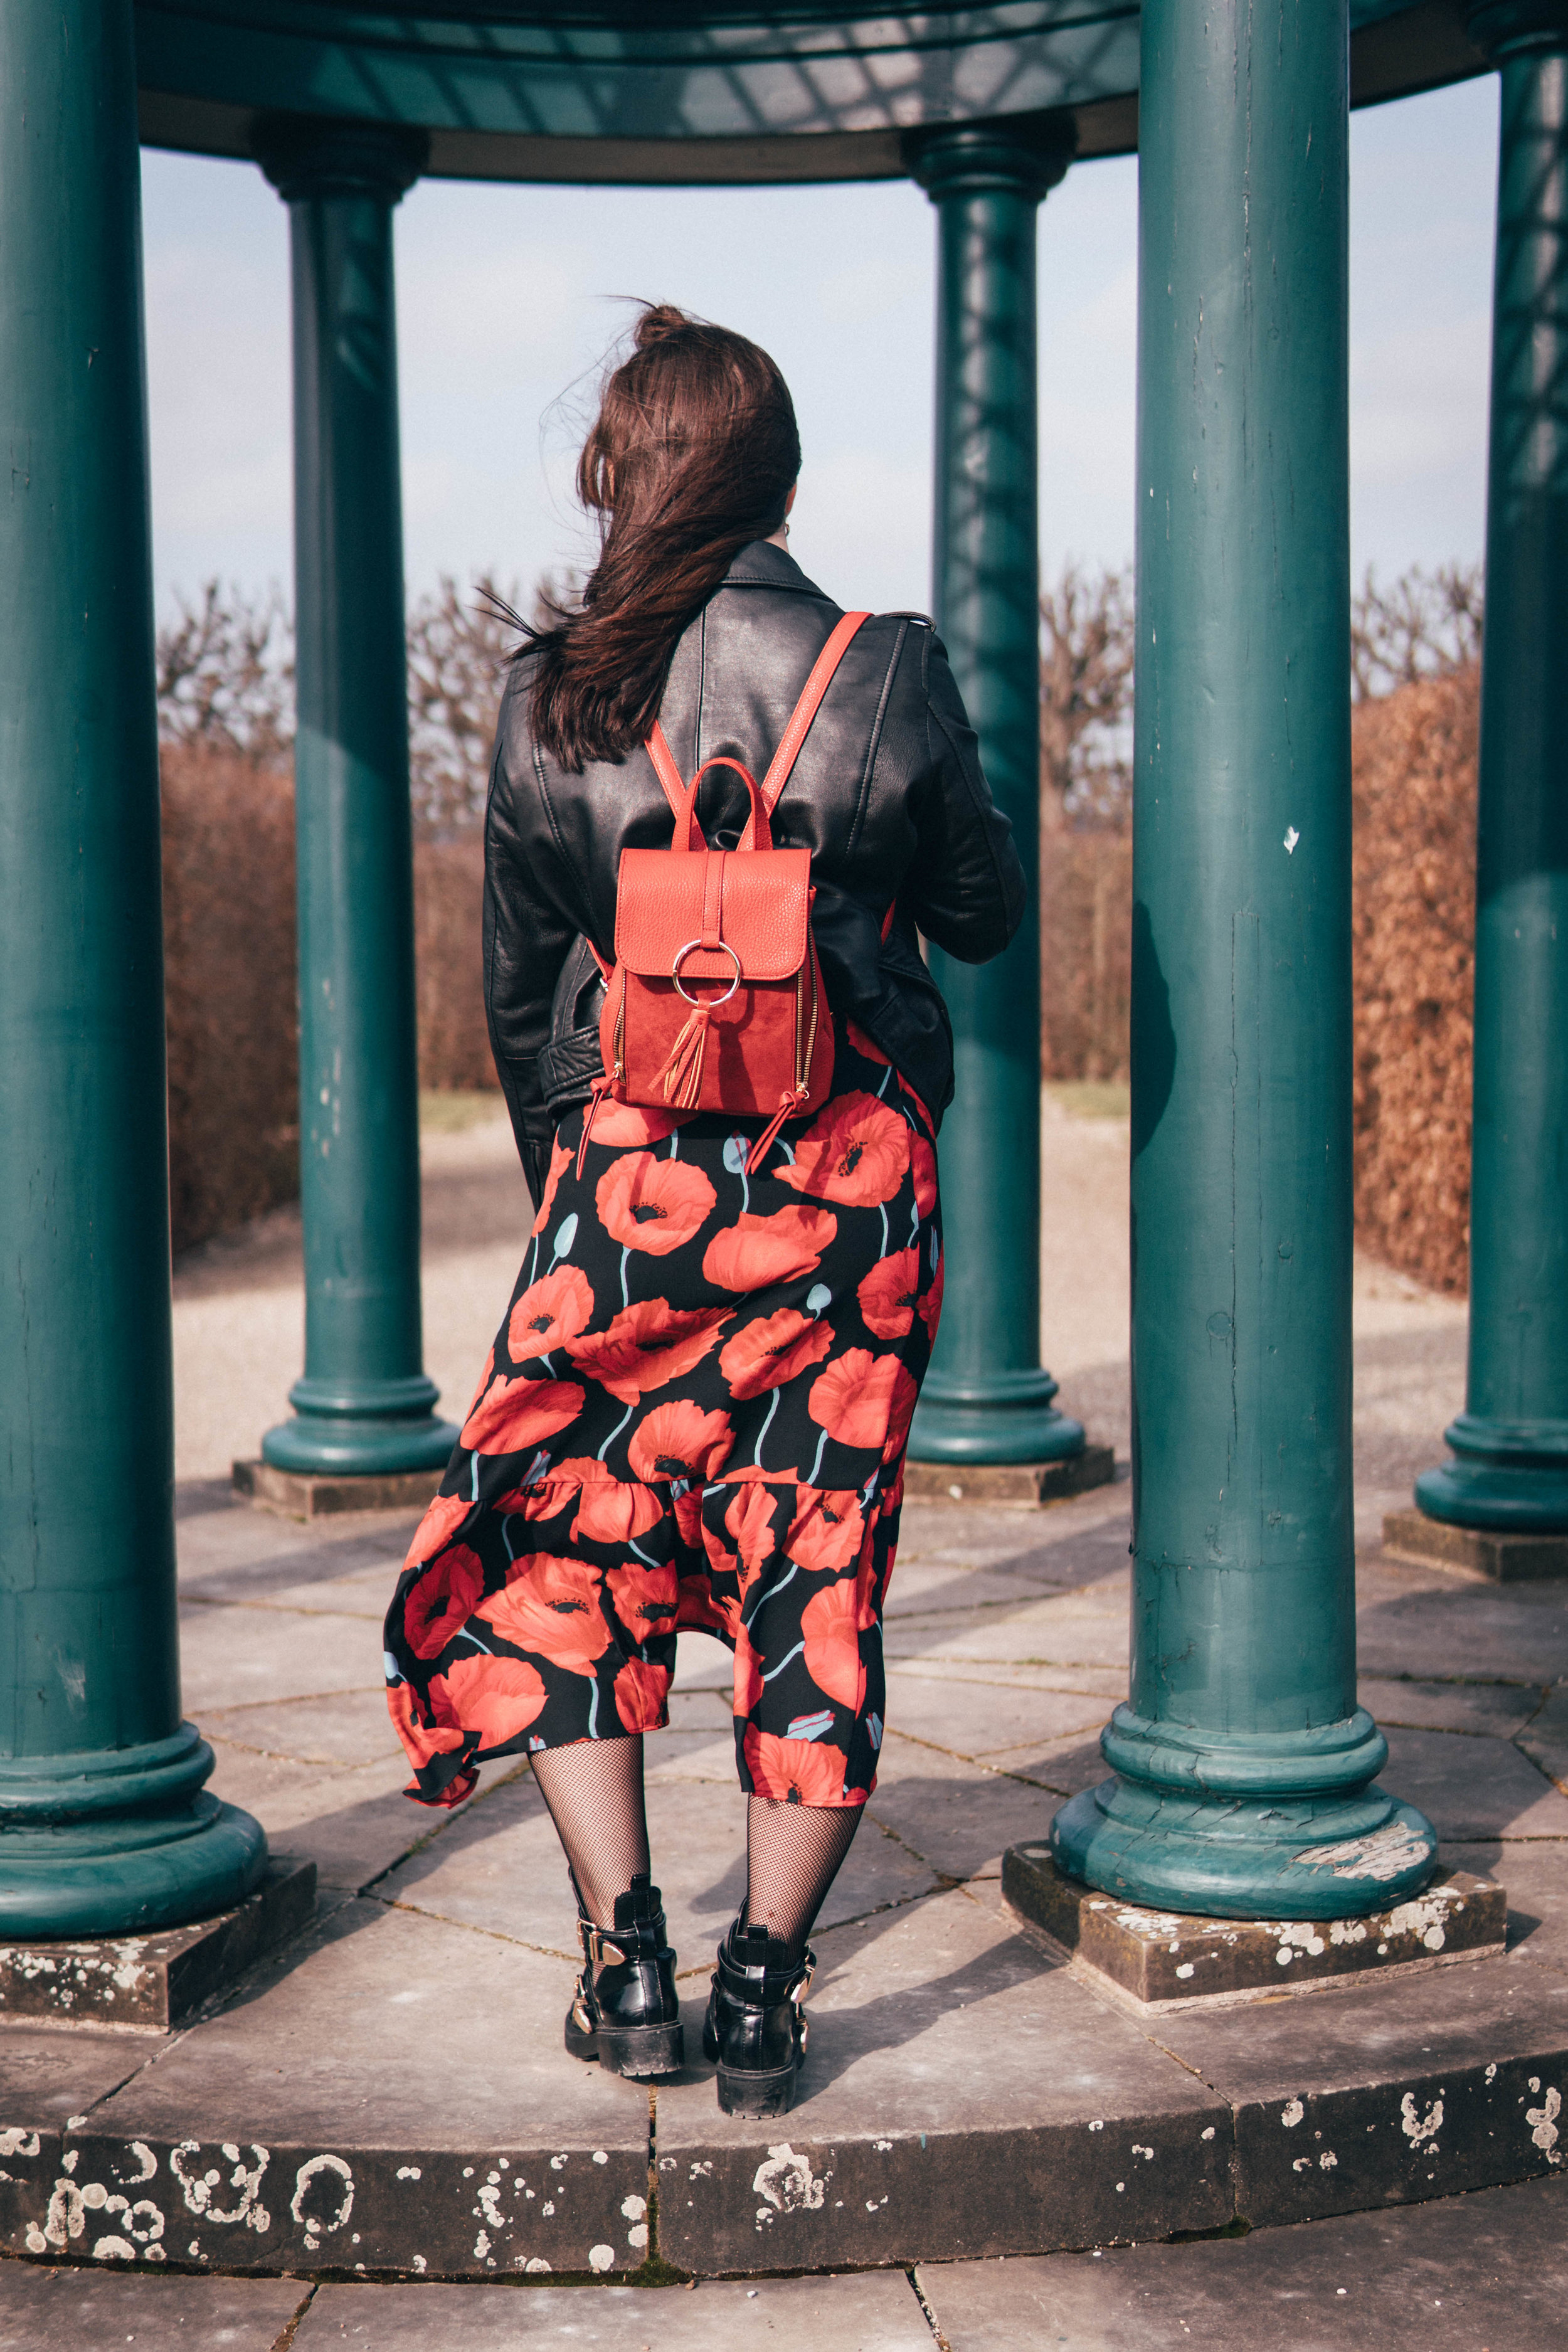 No hurries, no worries! - Luckily there are so so many affordable designer bag dupes out there which I think (as a student) are totally cool to stick to as they're much more reasonable for now.